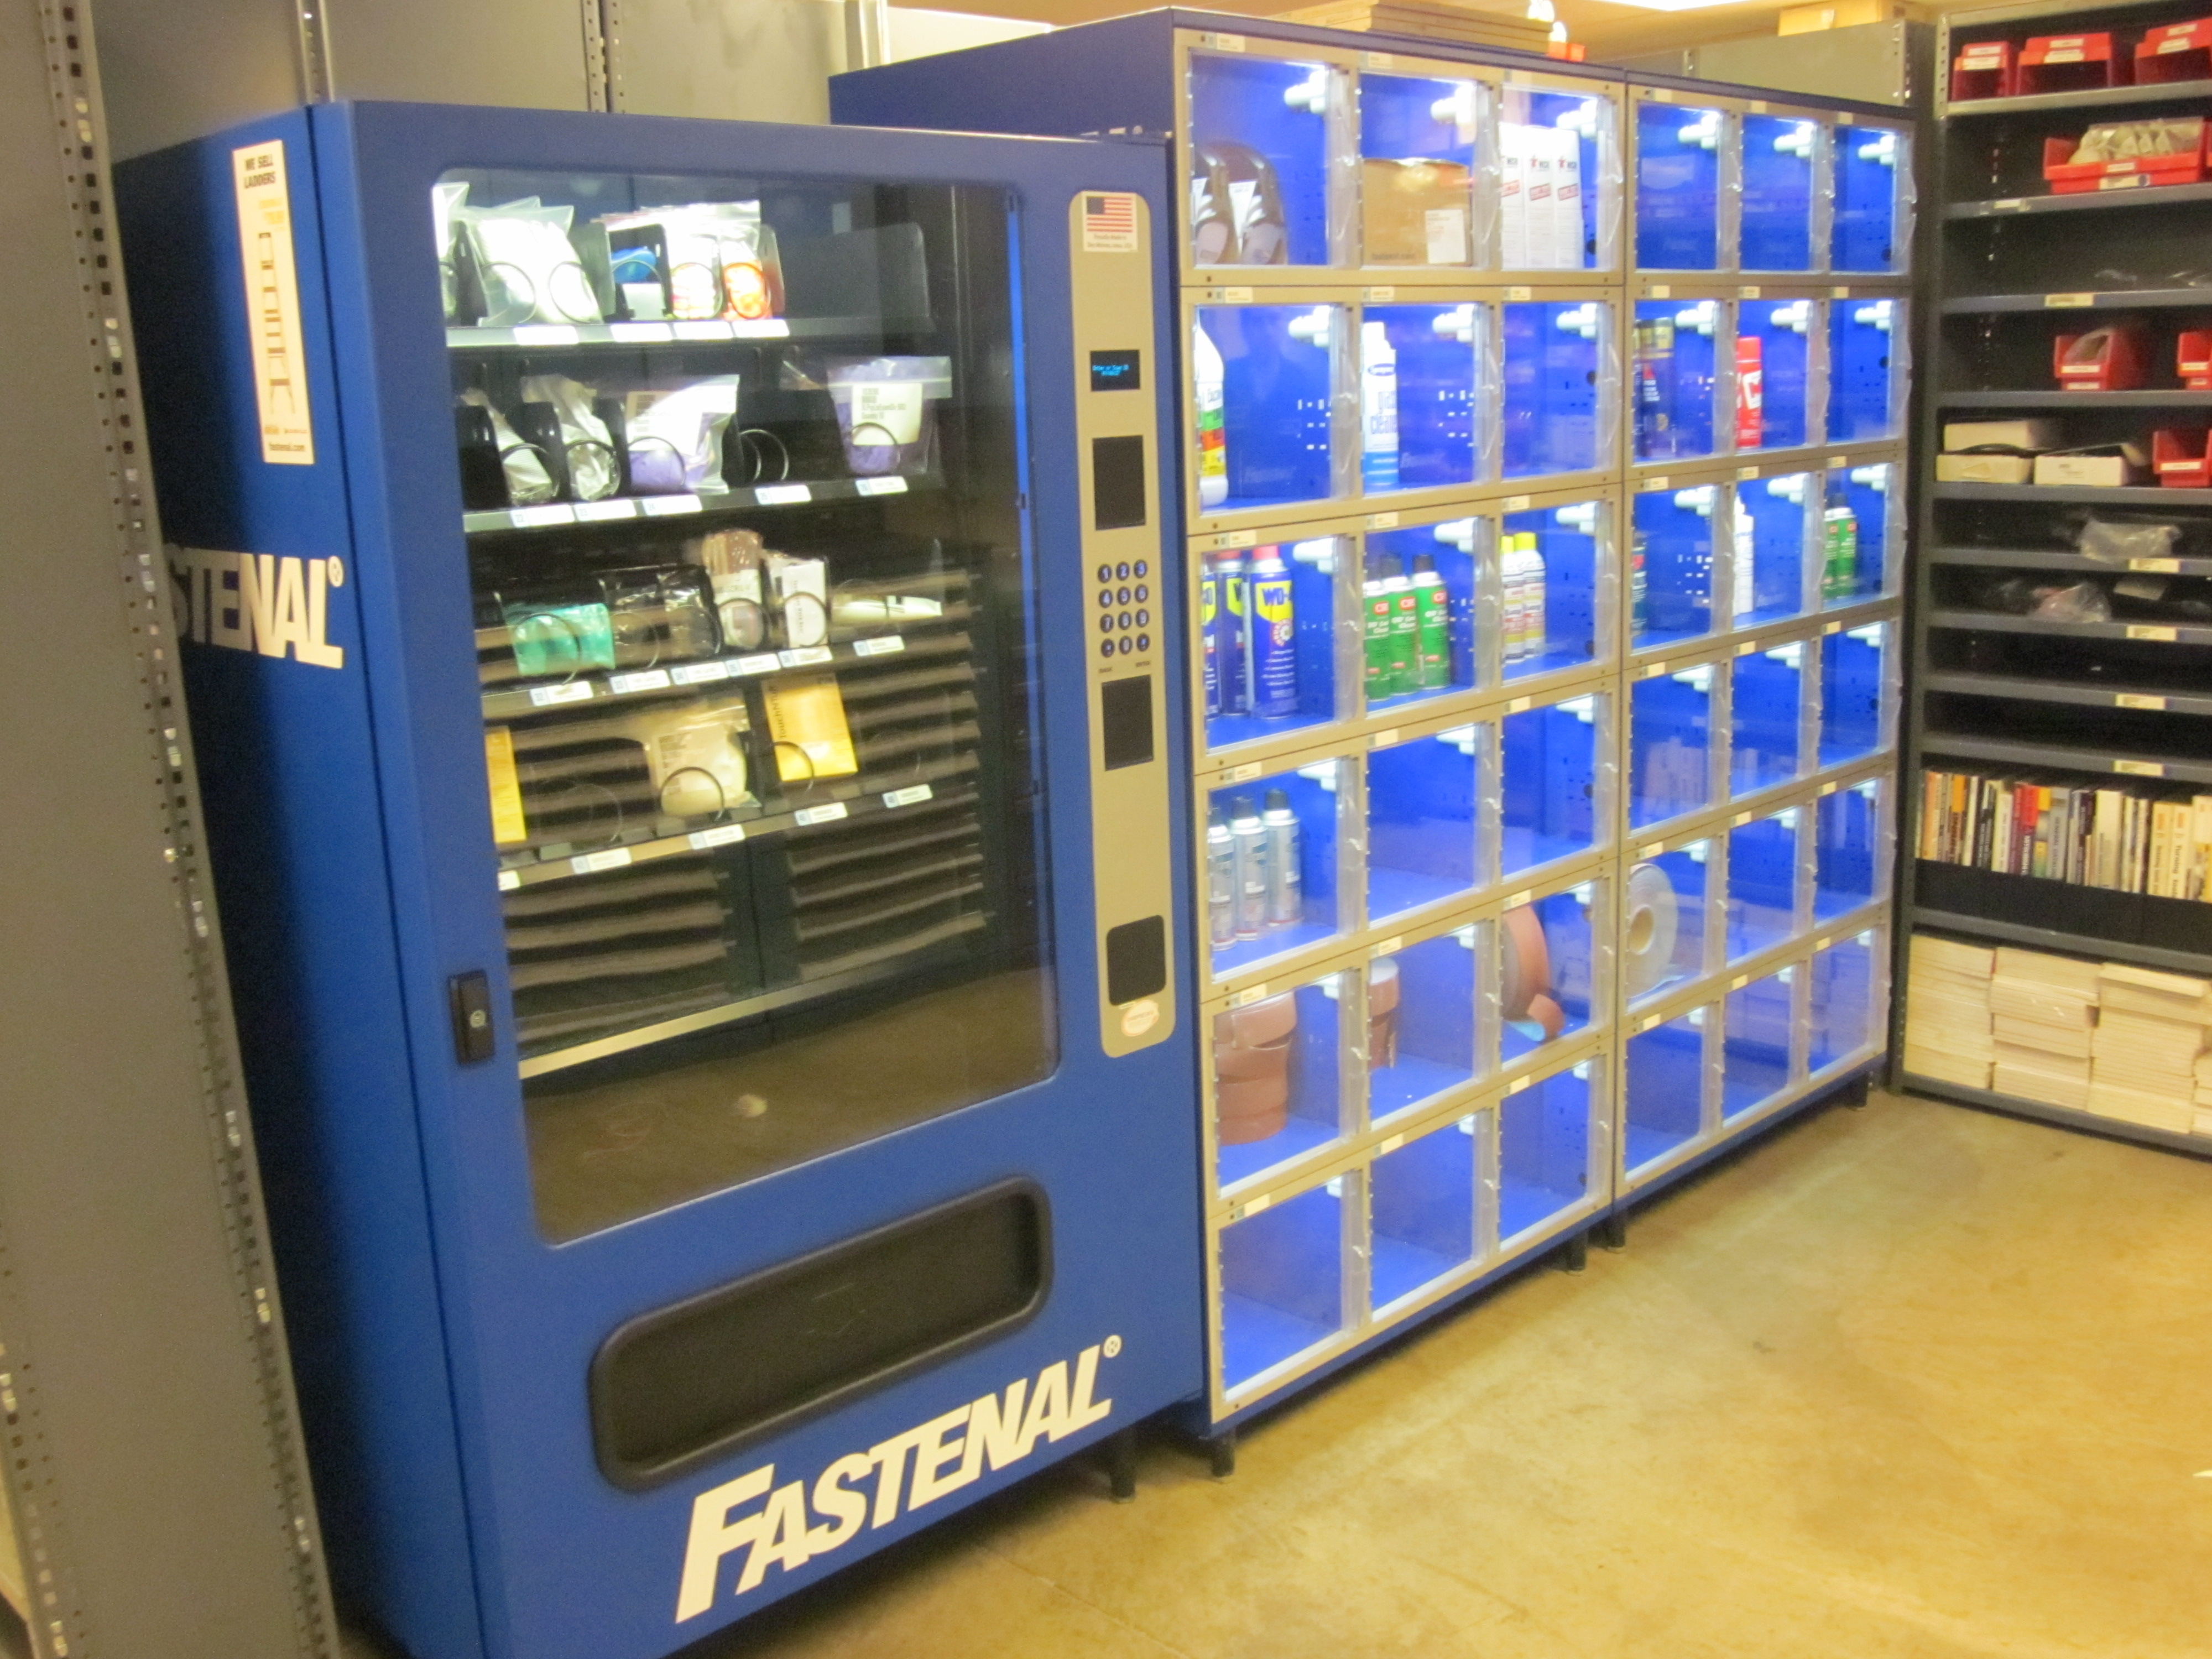 Roll Kraft Adds Fastenal Vending Machines To Reduce Waste